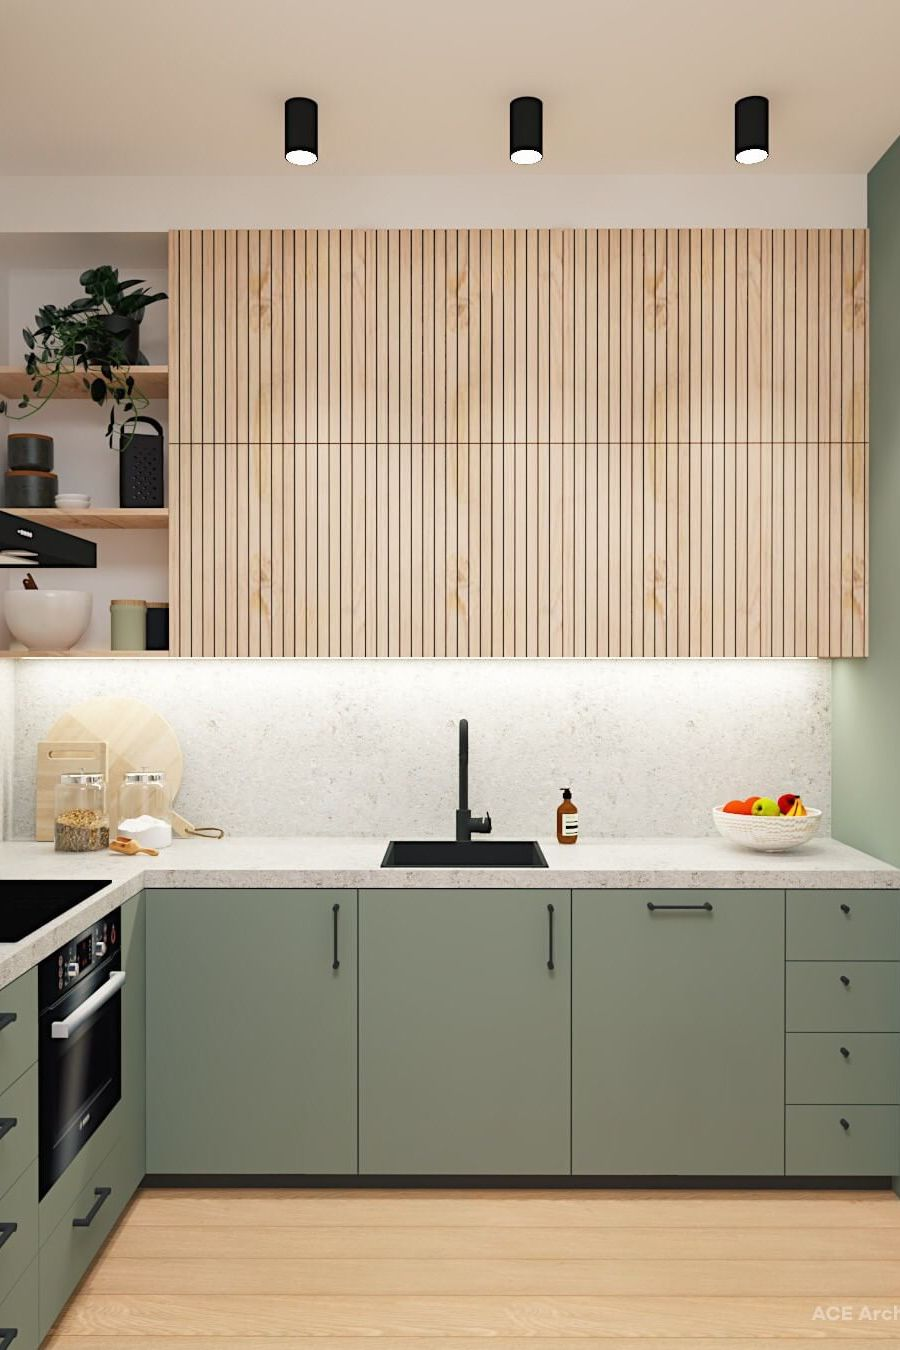 Wood kitchen design ideas in light green with shelves and lighting